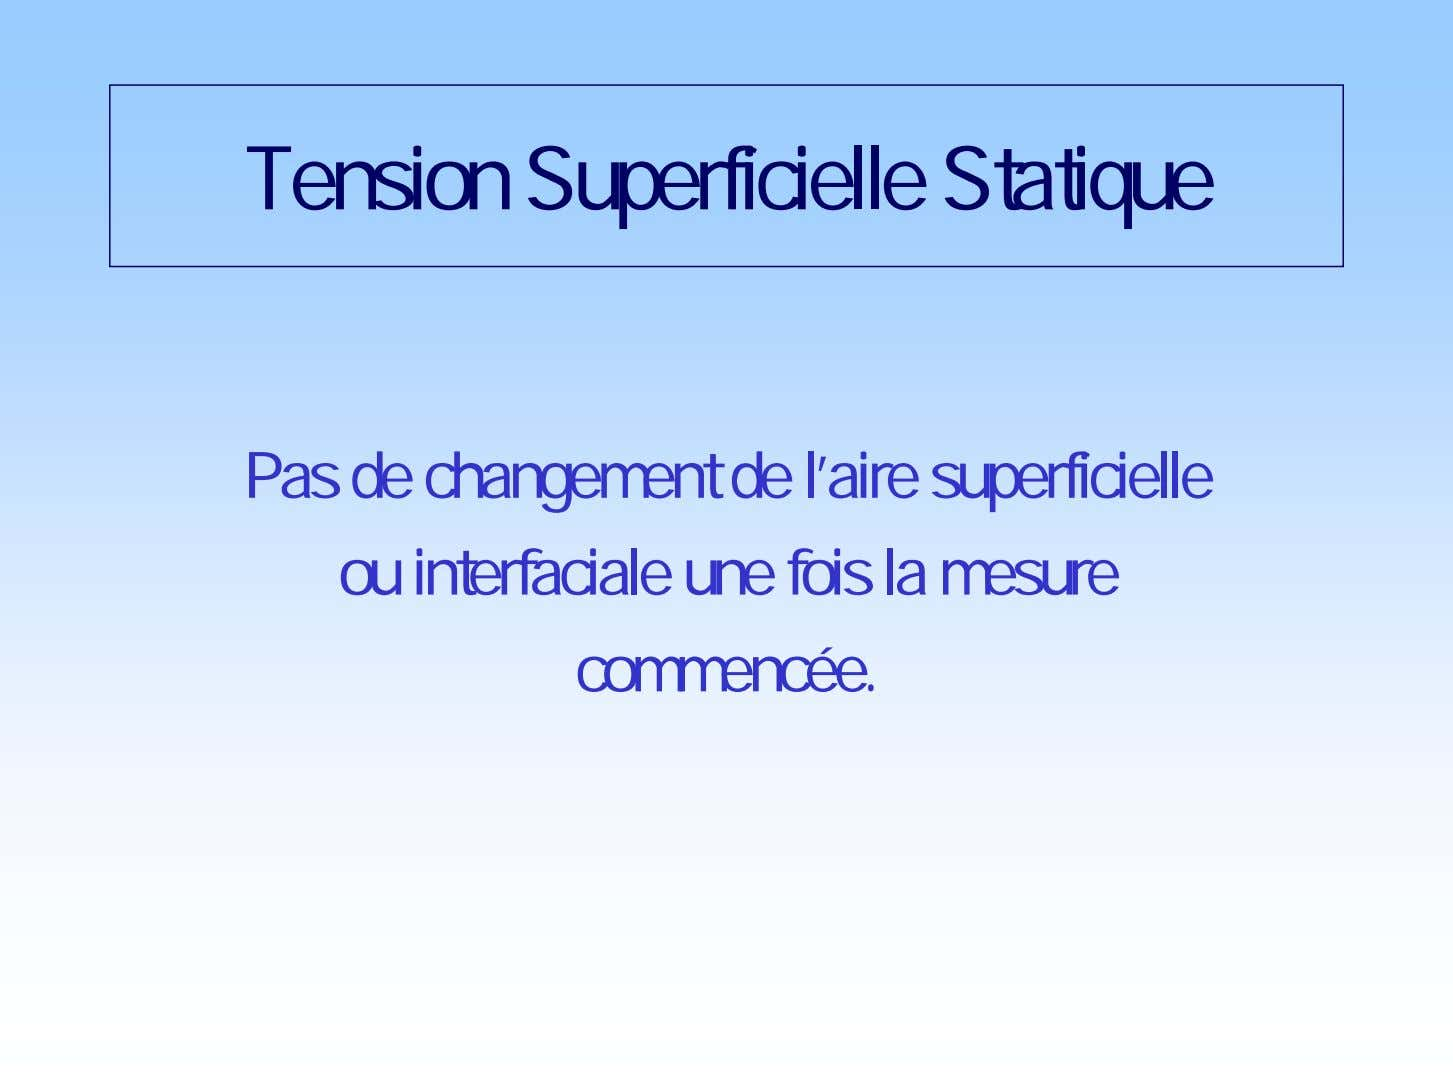 Tension Superficielle Statique Pas de changement de l'aire superficielle ou interfaciale une fois la mesure